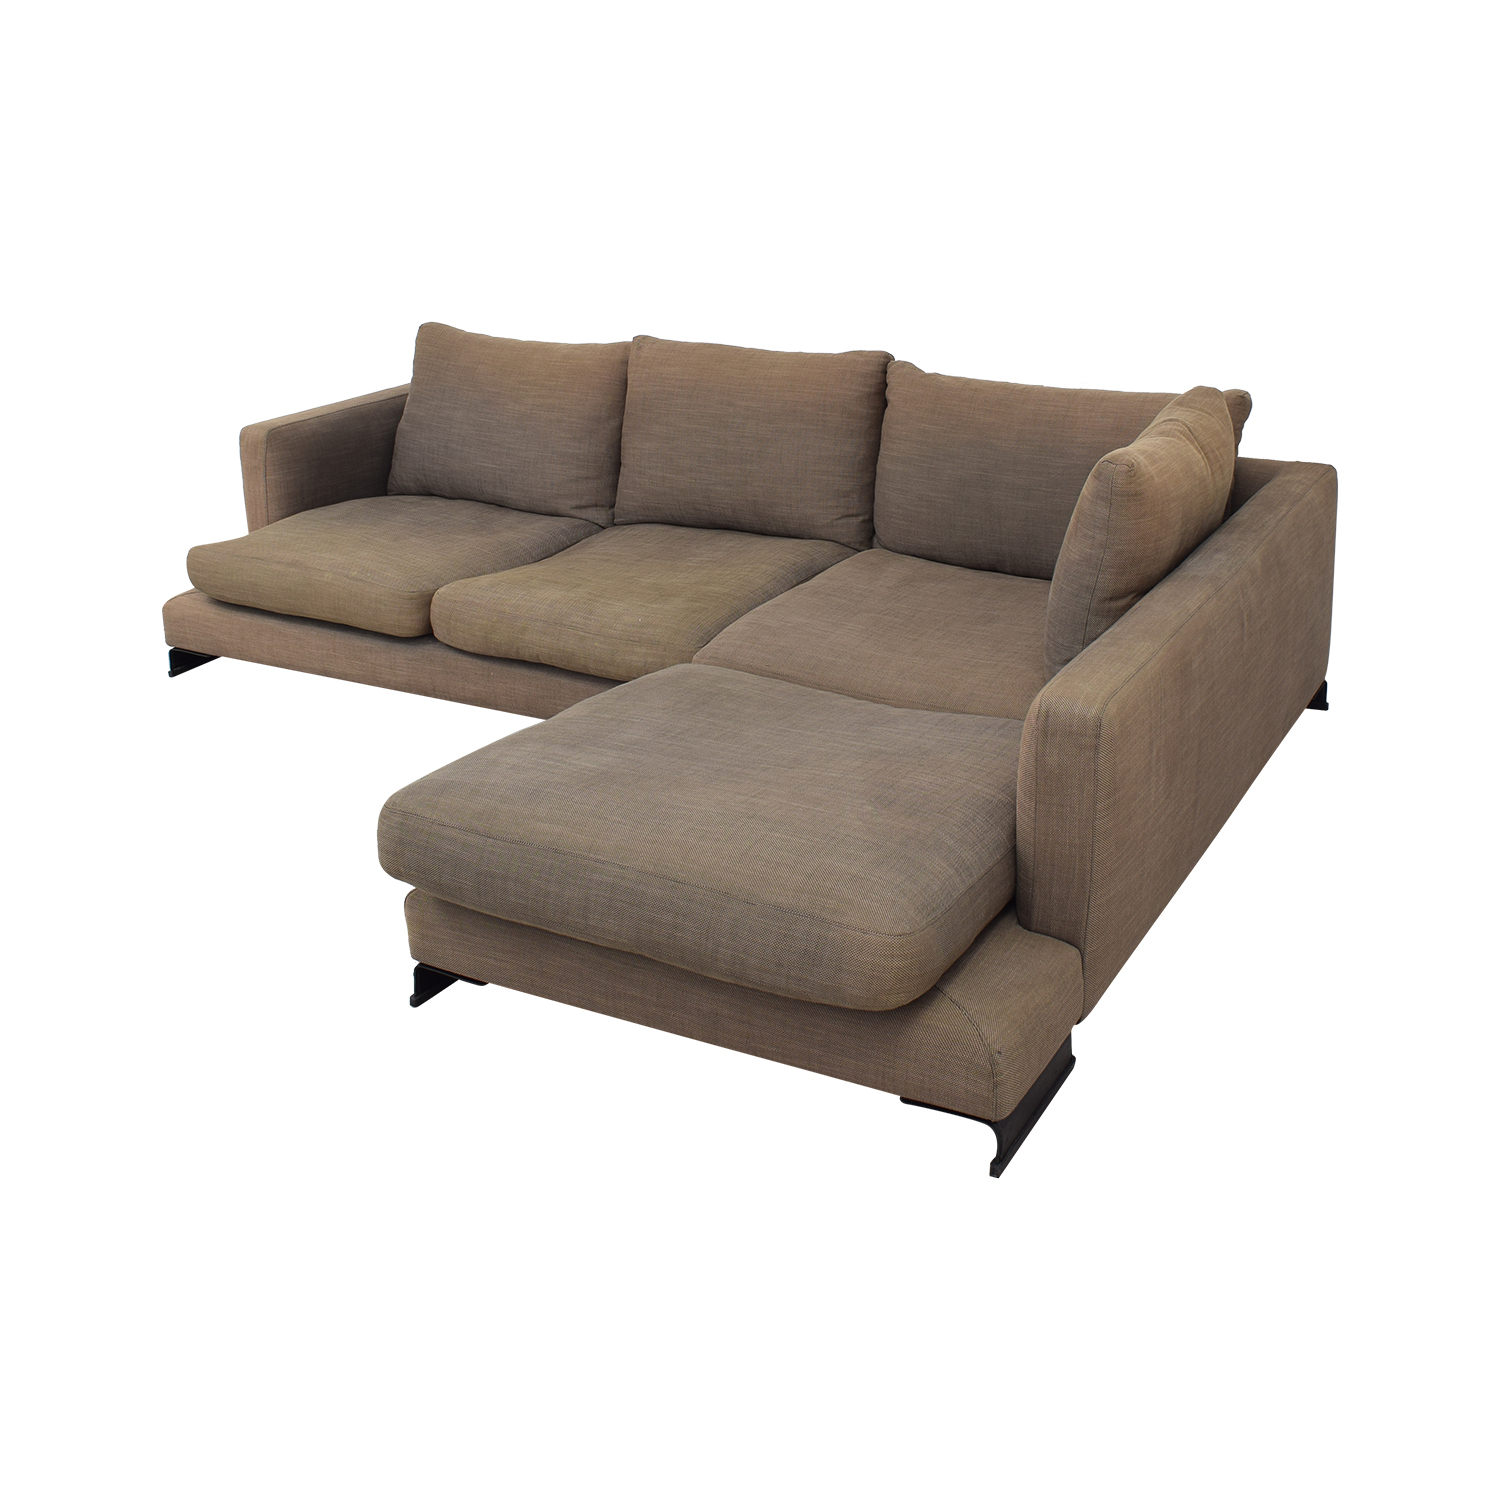 Camerich Camerich Lazy Time Custom Sectional Sofa dimensions